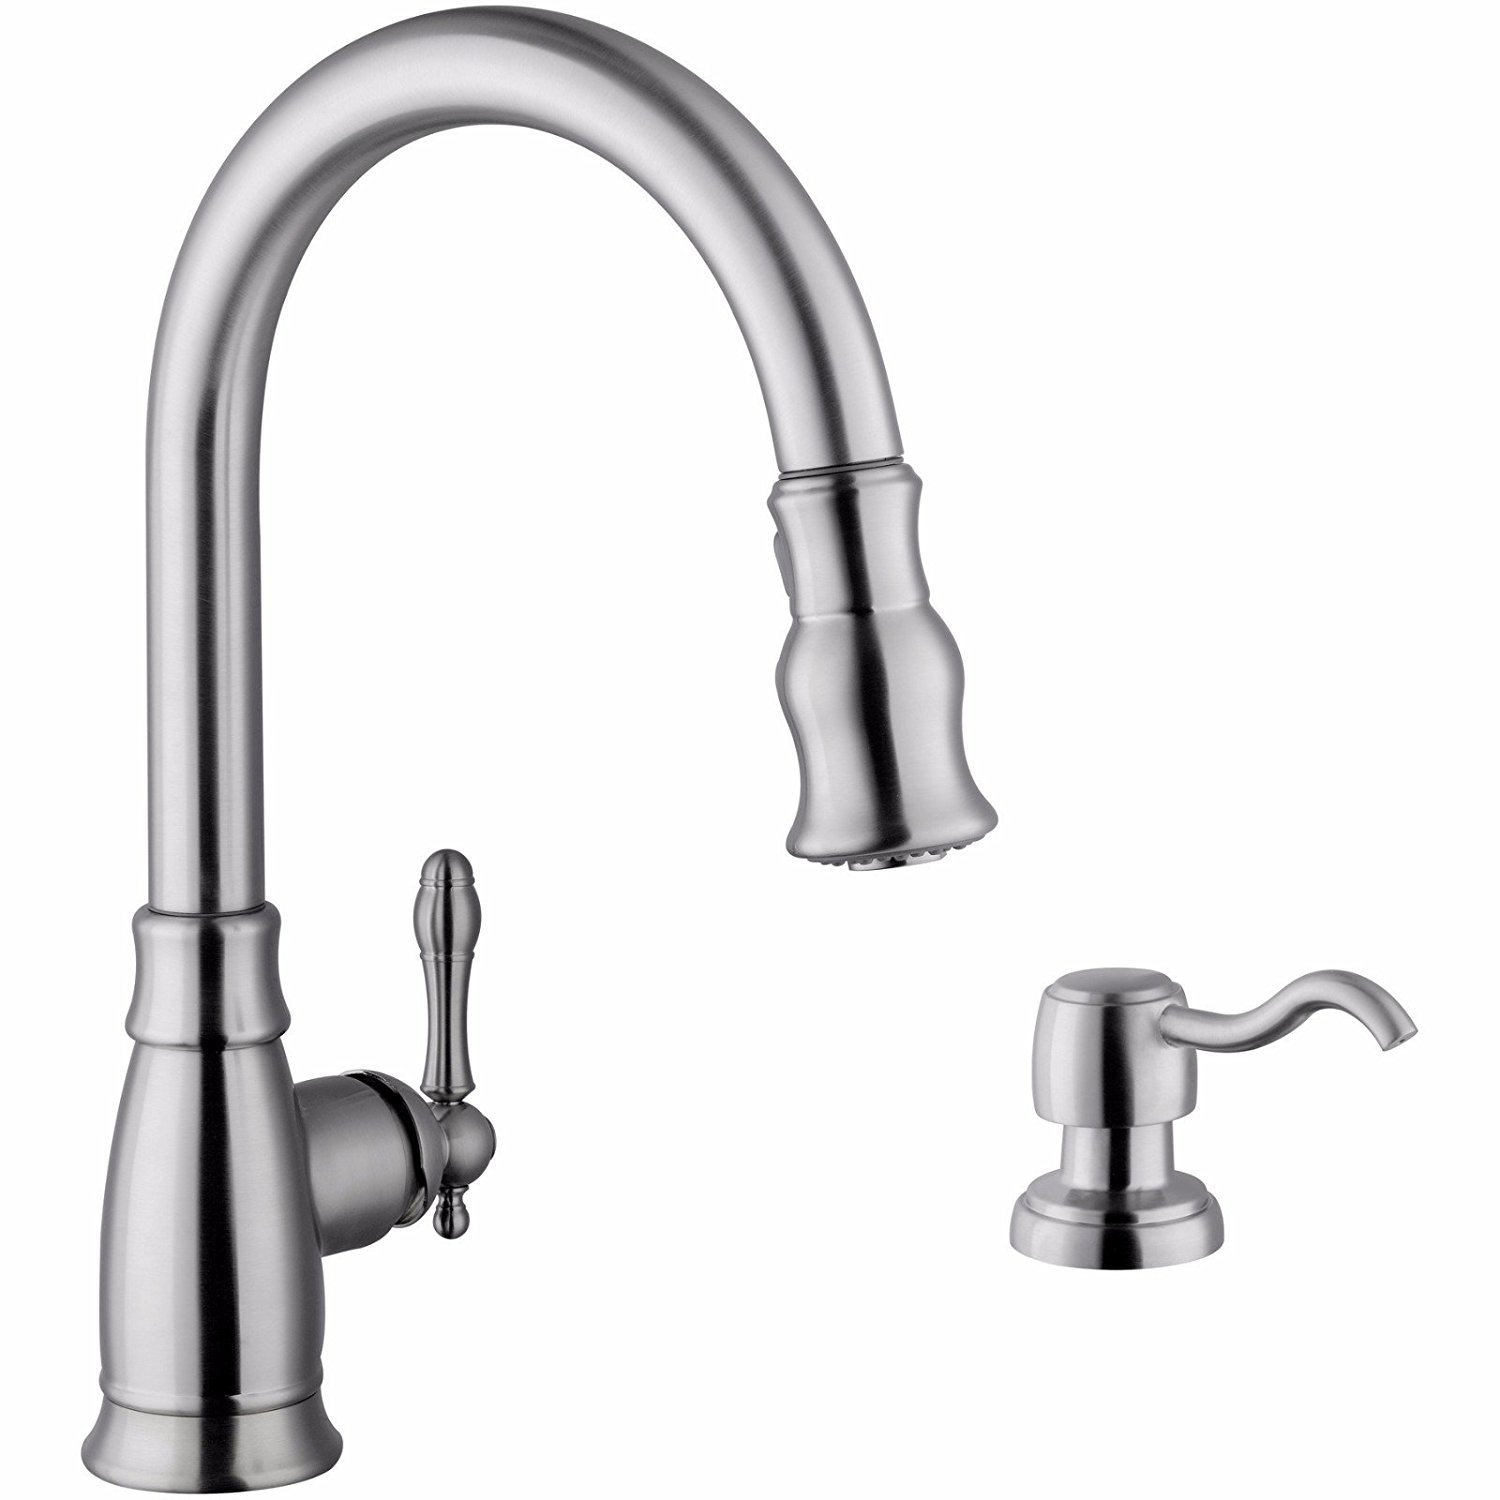 Cahaba CA6111SS Single Lever Handle Pull Down Faucet with Soap Dispenser